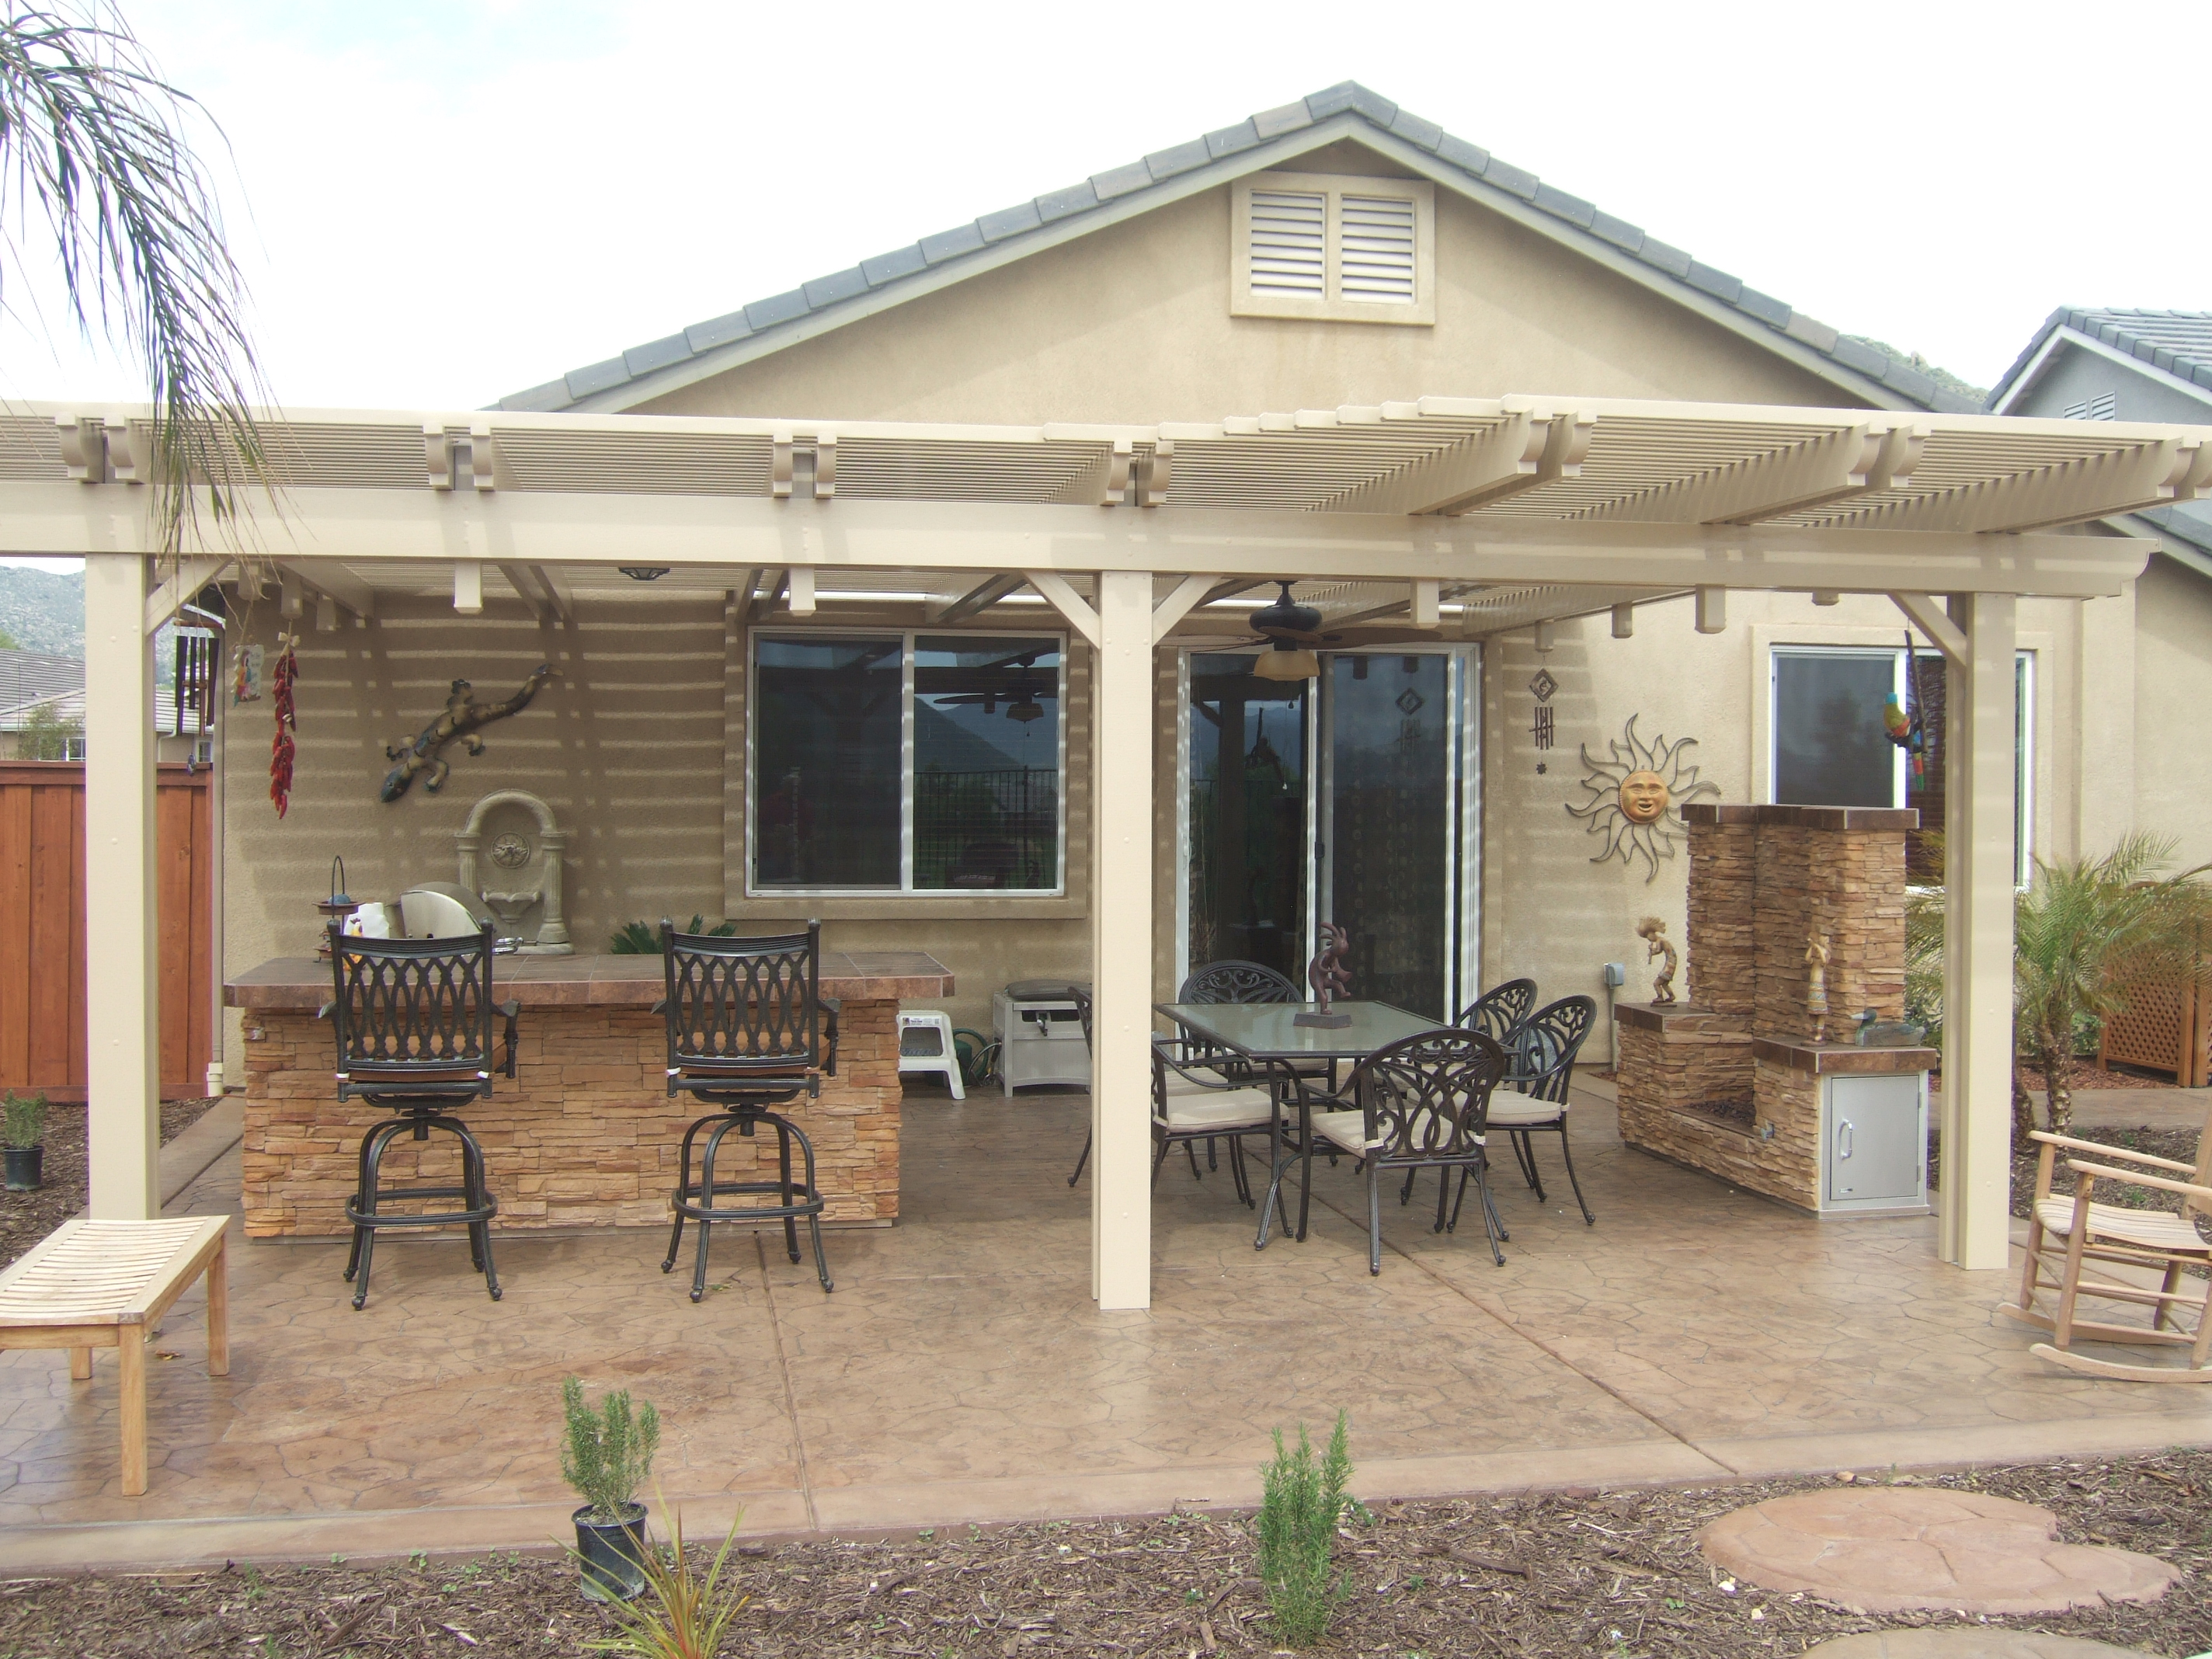 Patio Overhang Plans Home Design Ideas and